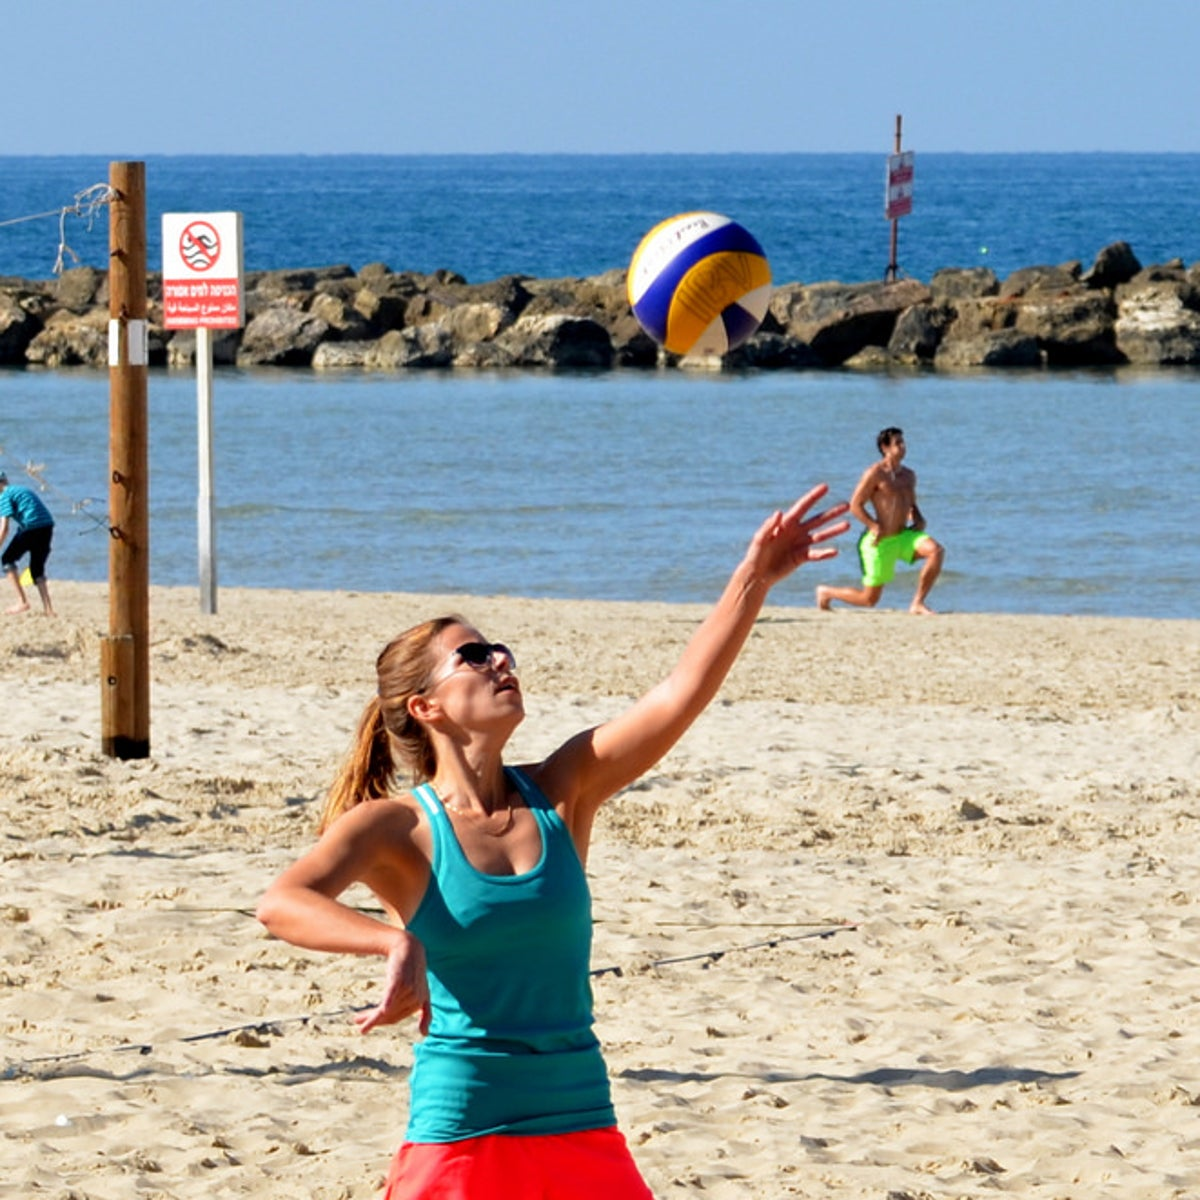 Playing volleyball on the beach in Tel Aviv-Jaffa.